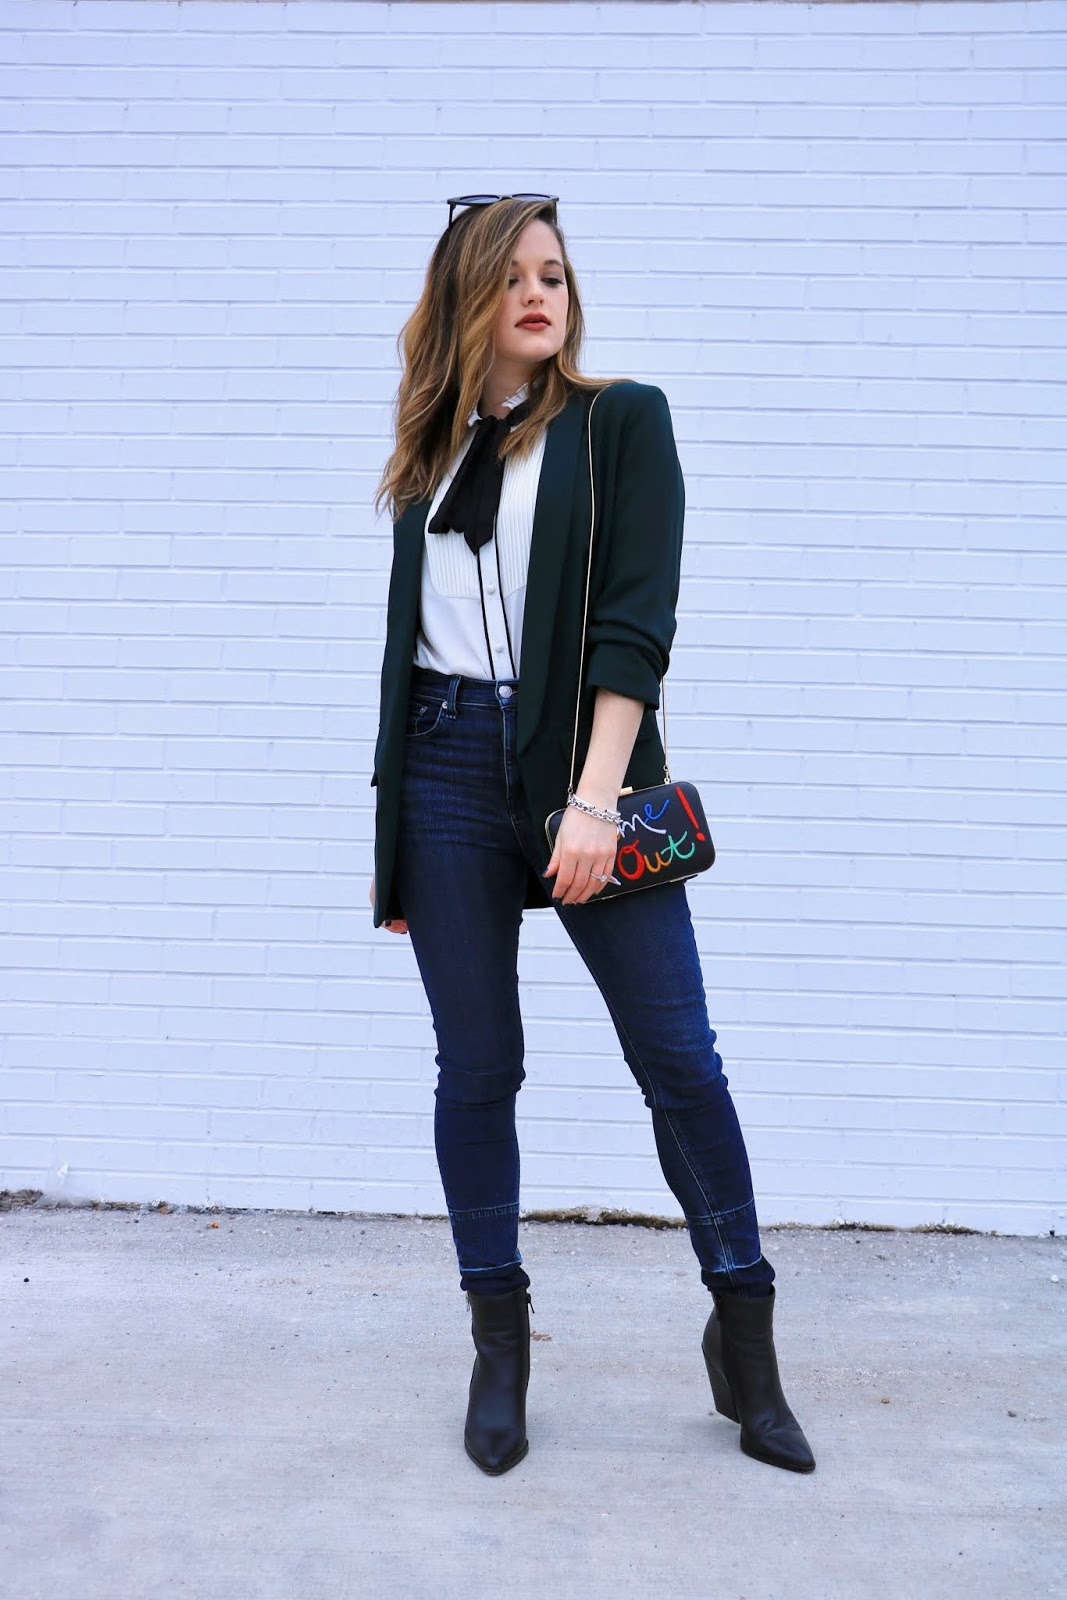 Nyc fashion blogger Kathleen Harper wearing a work outfit with jeans.